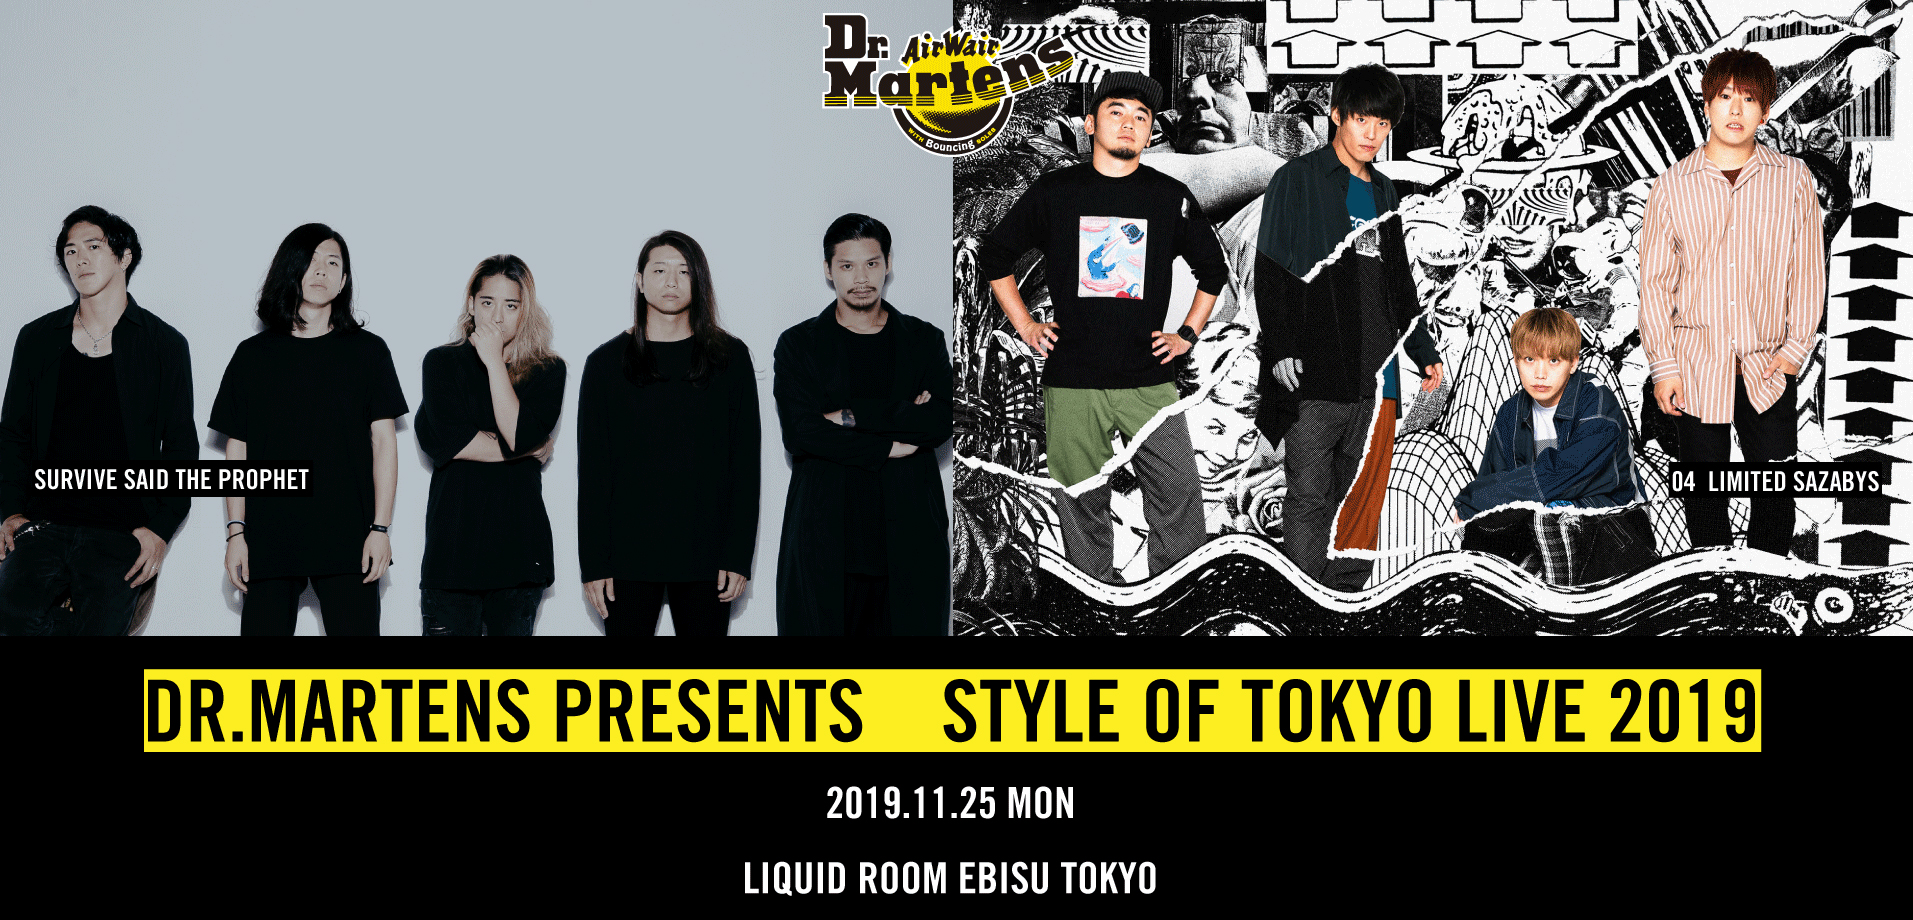 """DR.MARTENS presents STYLE of TOKYO LIVE 2019"" 出演決定!"